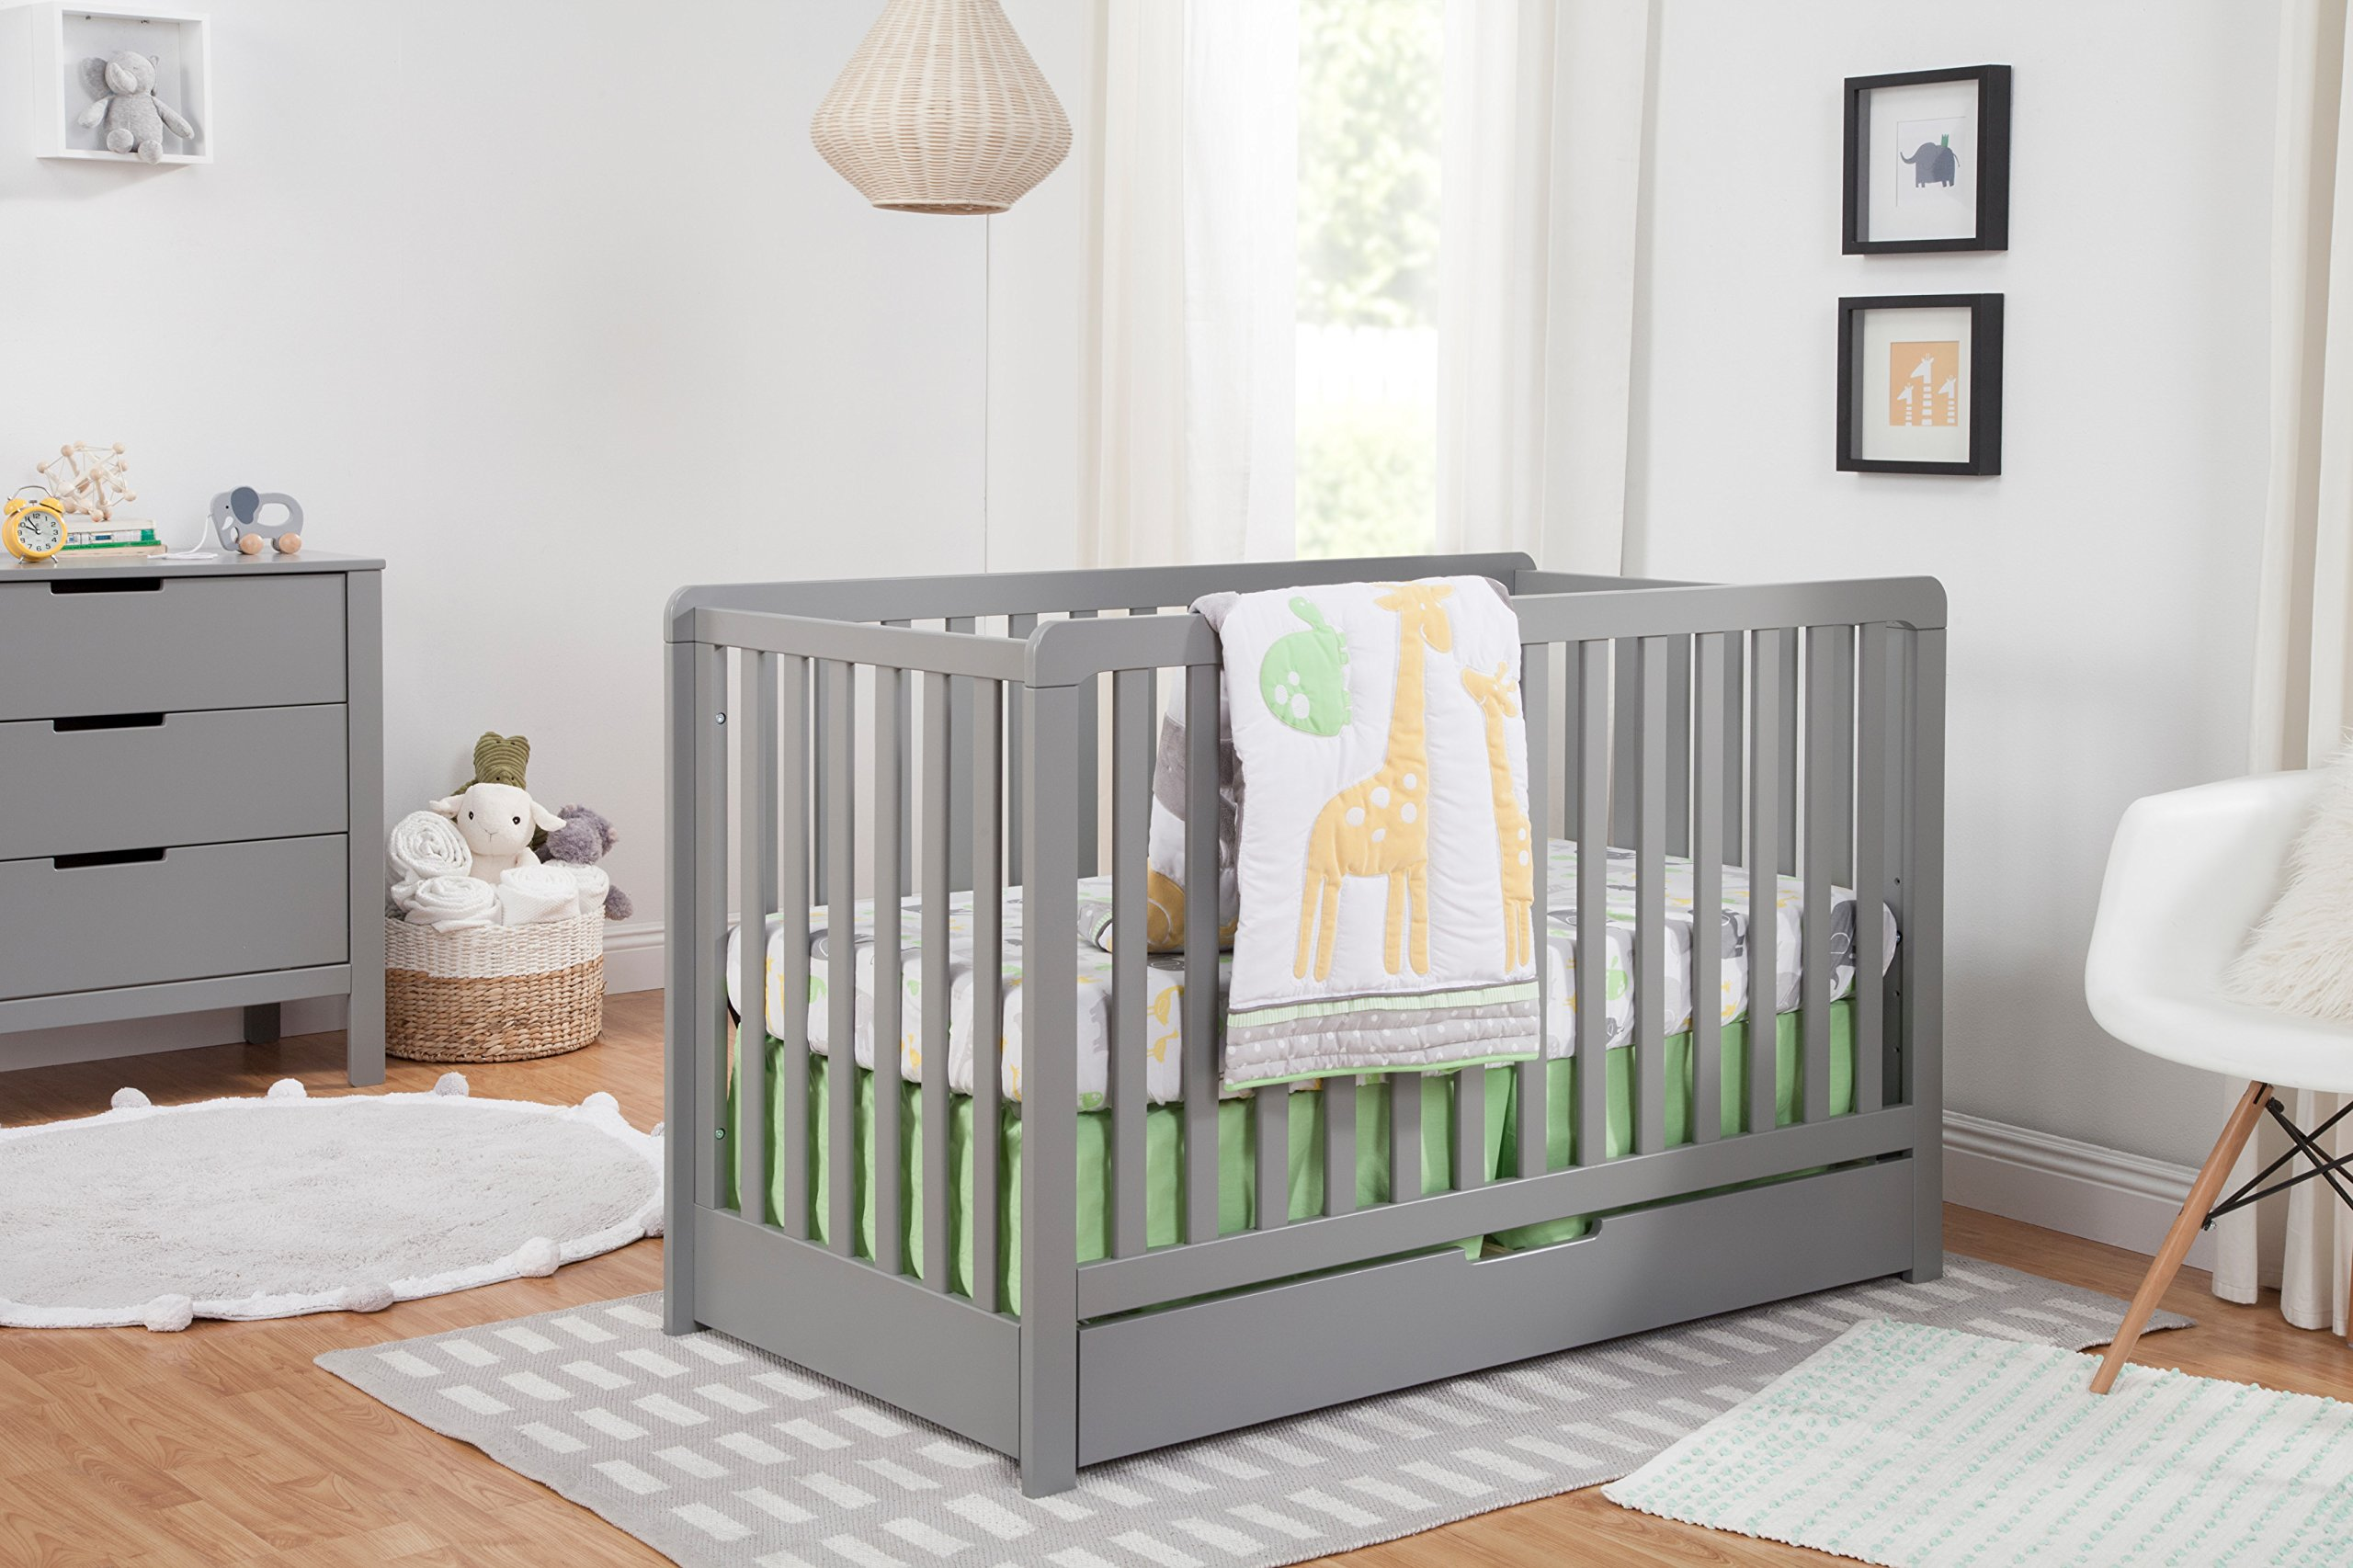 carter 39 s by davinci colby 4 in 1 convertible crib with trundle drawer grey 48517822371 ebay. Black Bedroom Furniture Sets. Home Design Ideas